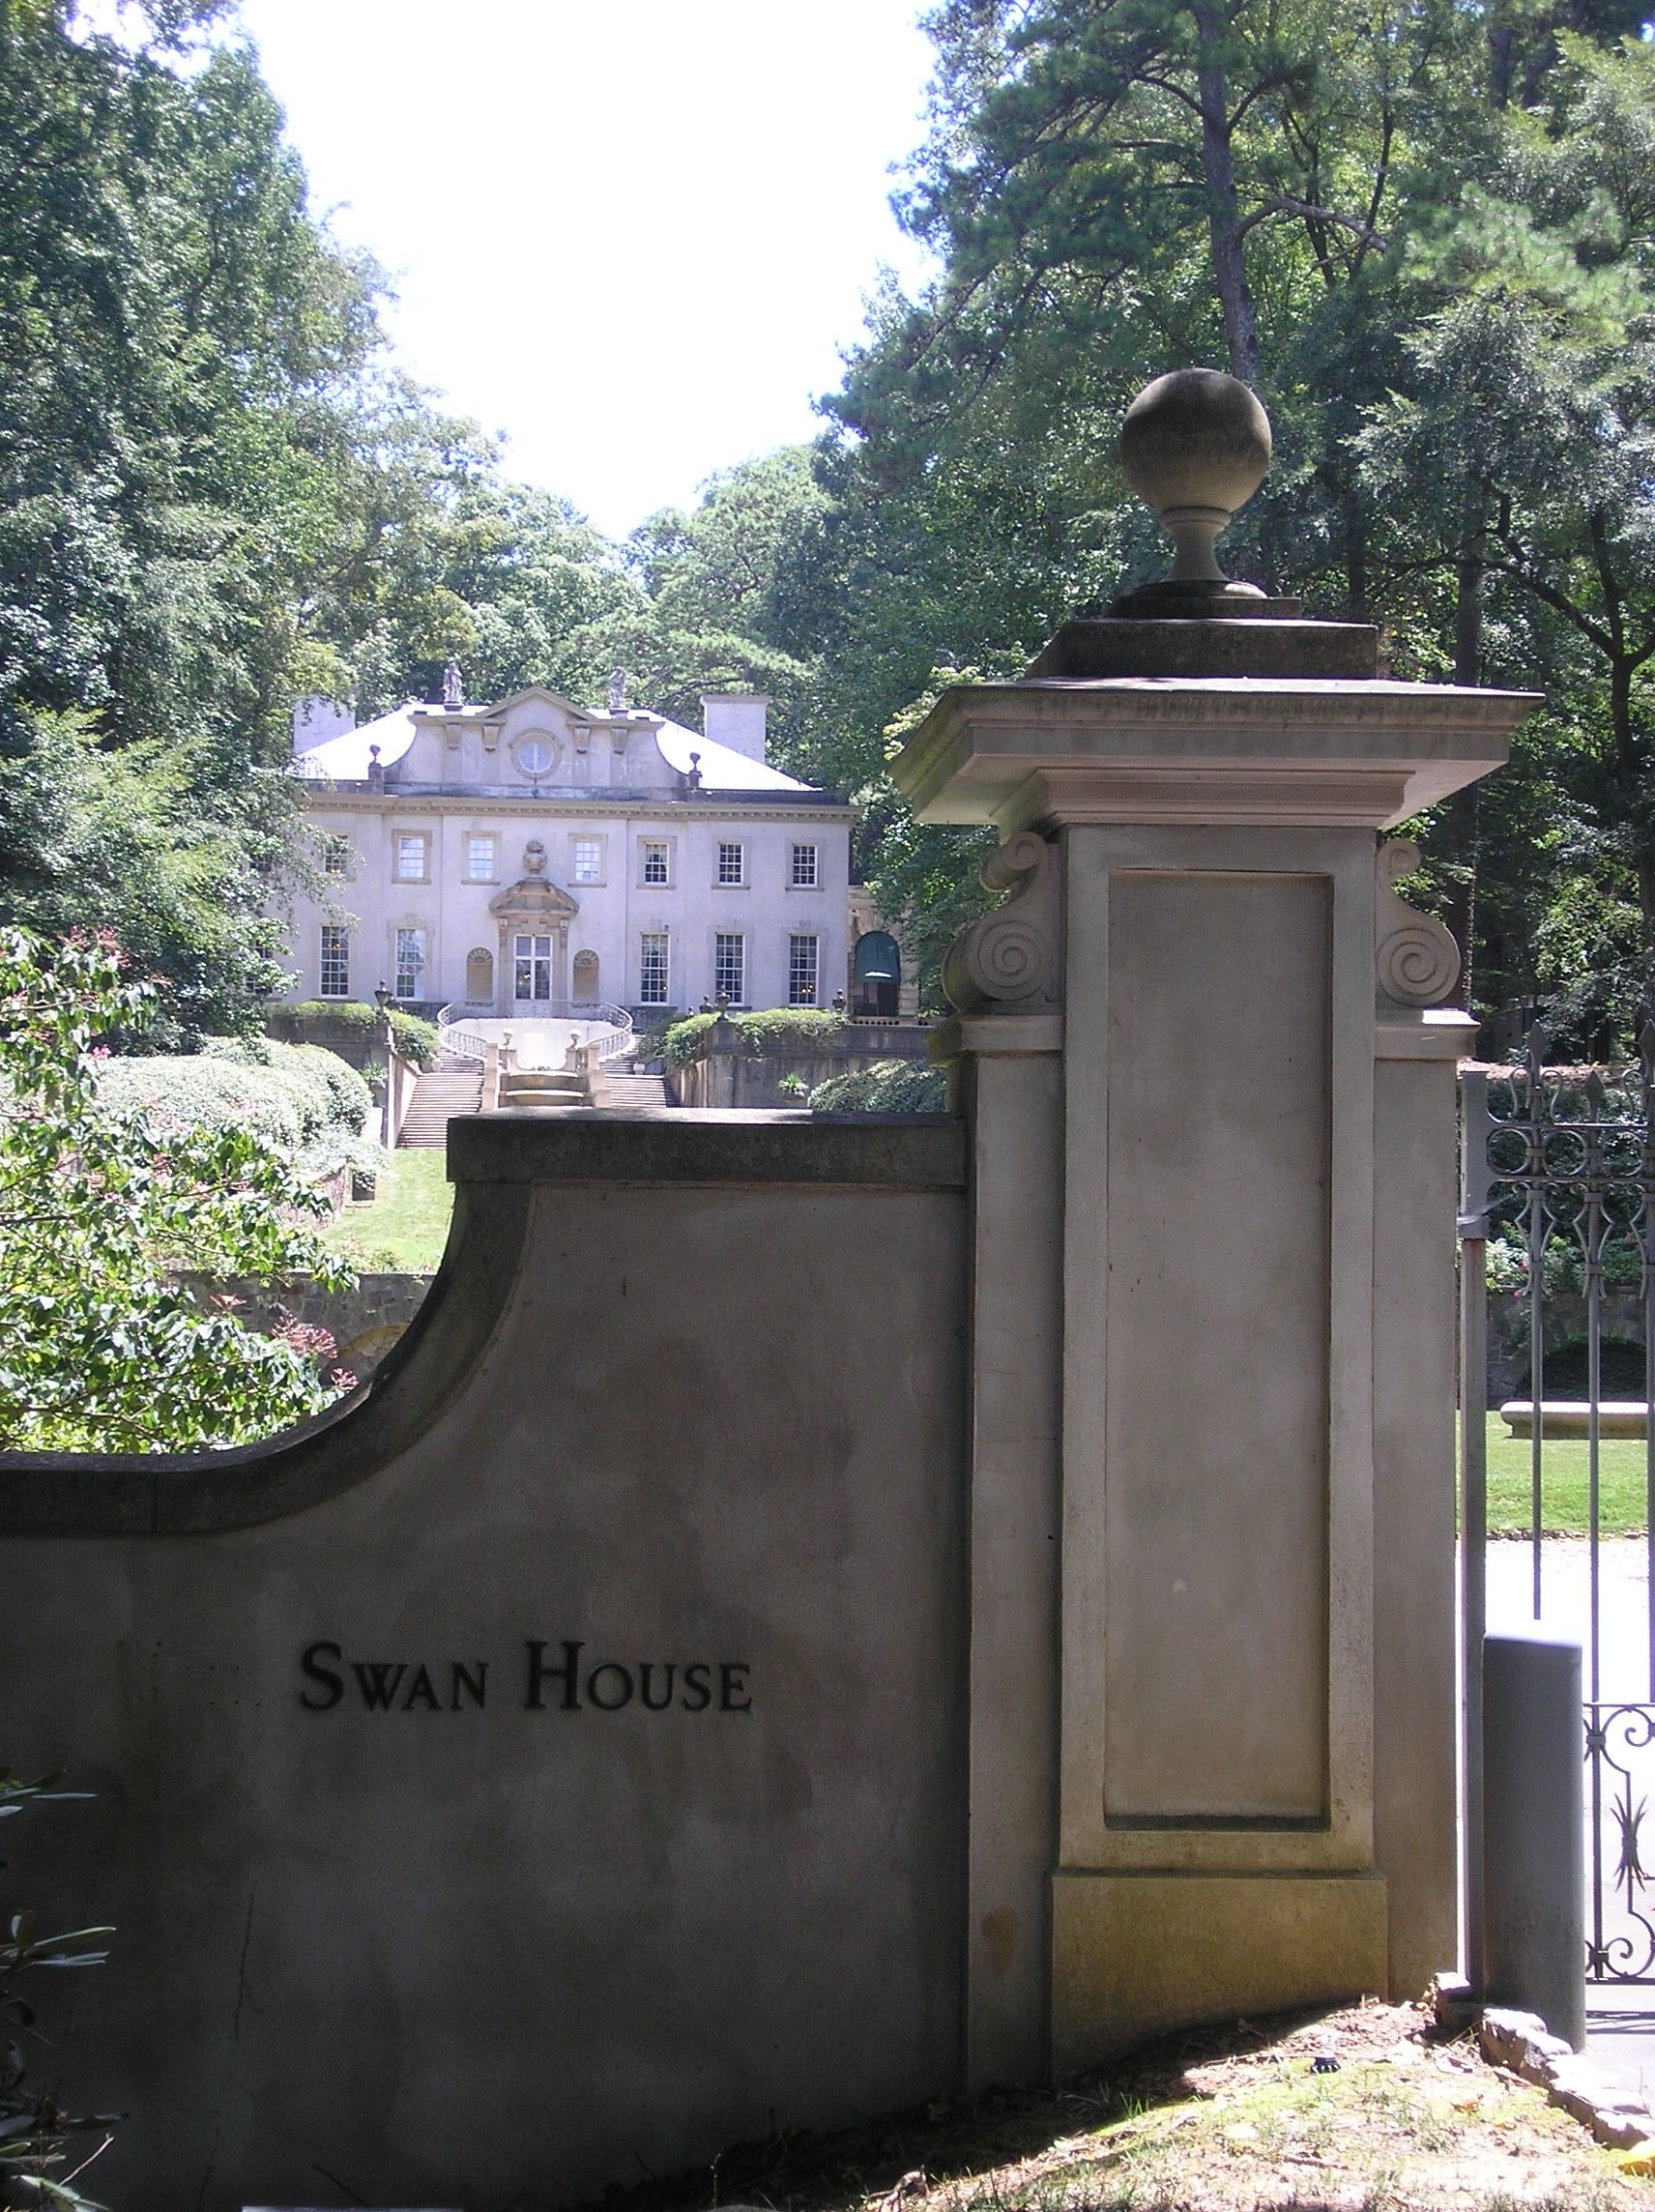 swan house from gate post atlanta photo by steve golse